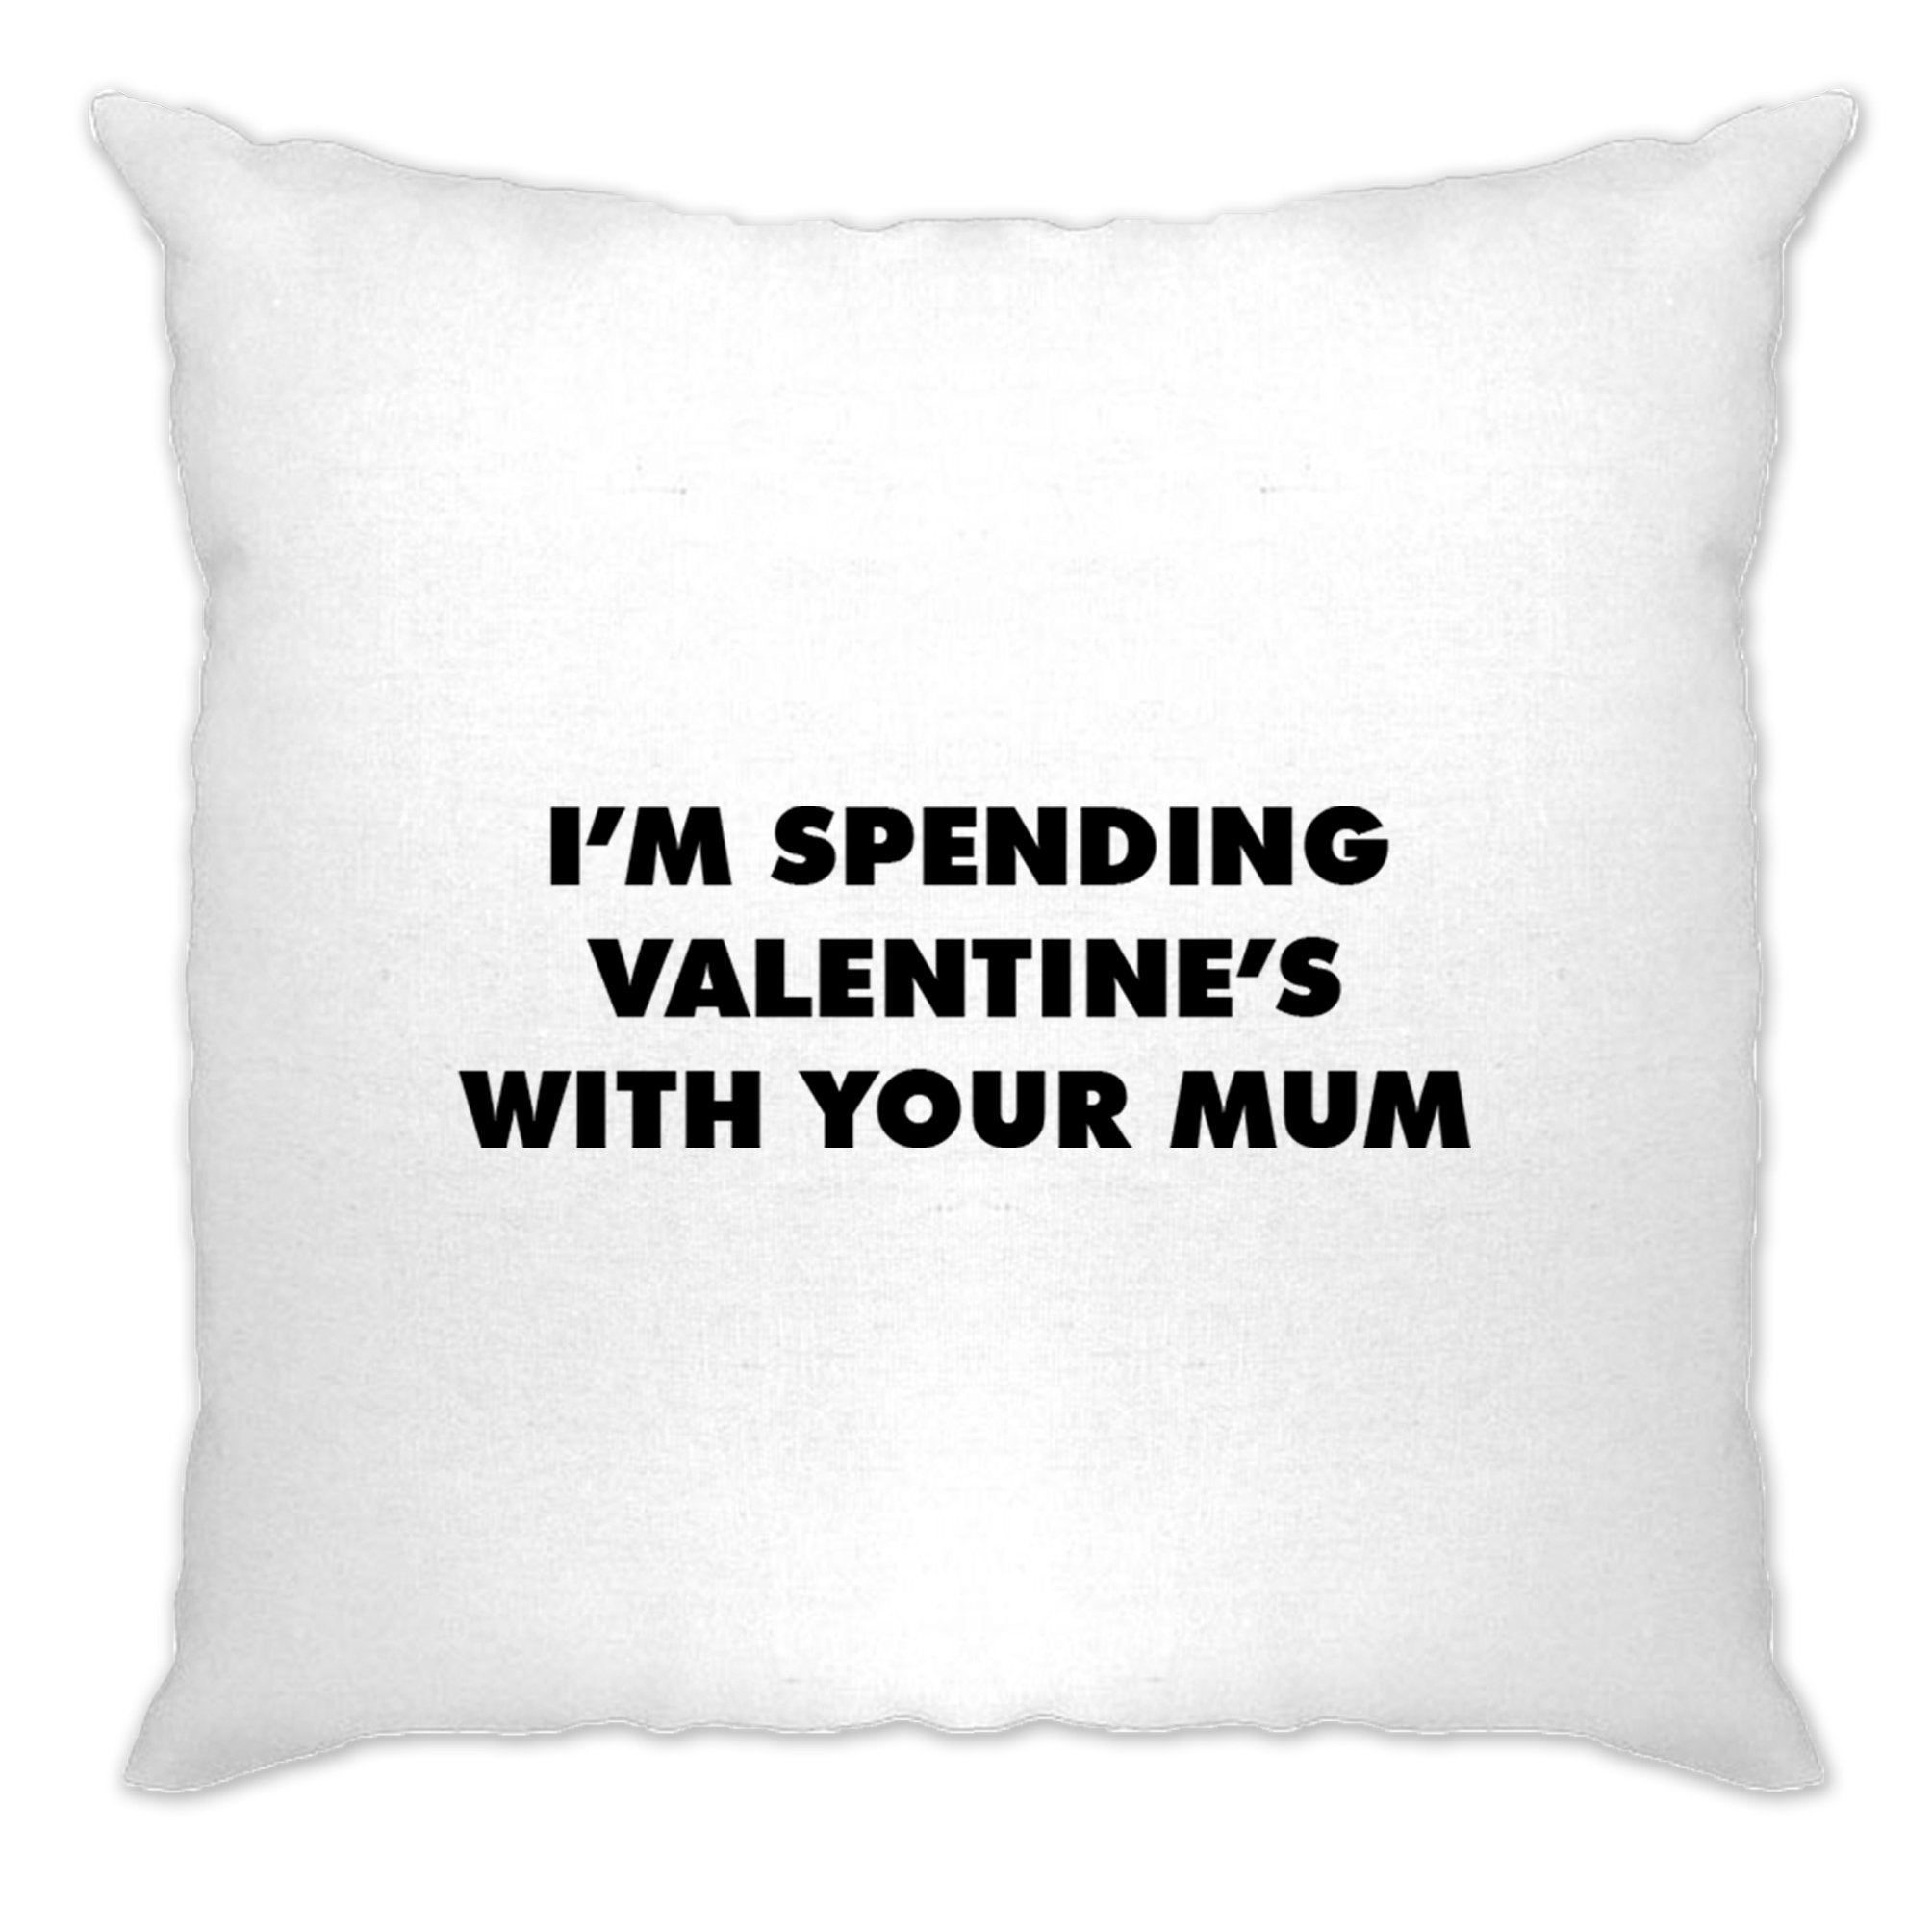 Novelty Cushion Cover Spending Valentine's With Your Mum